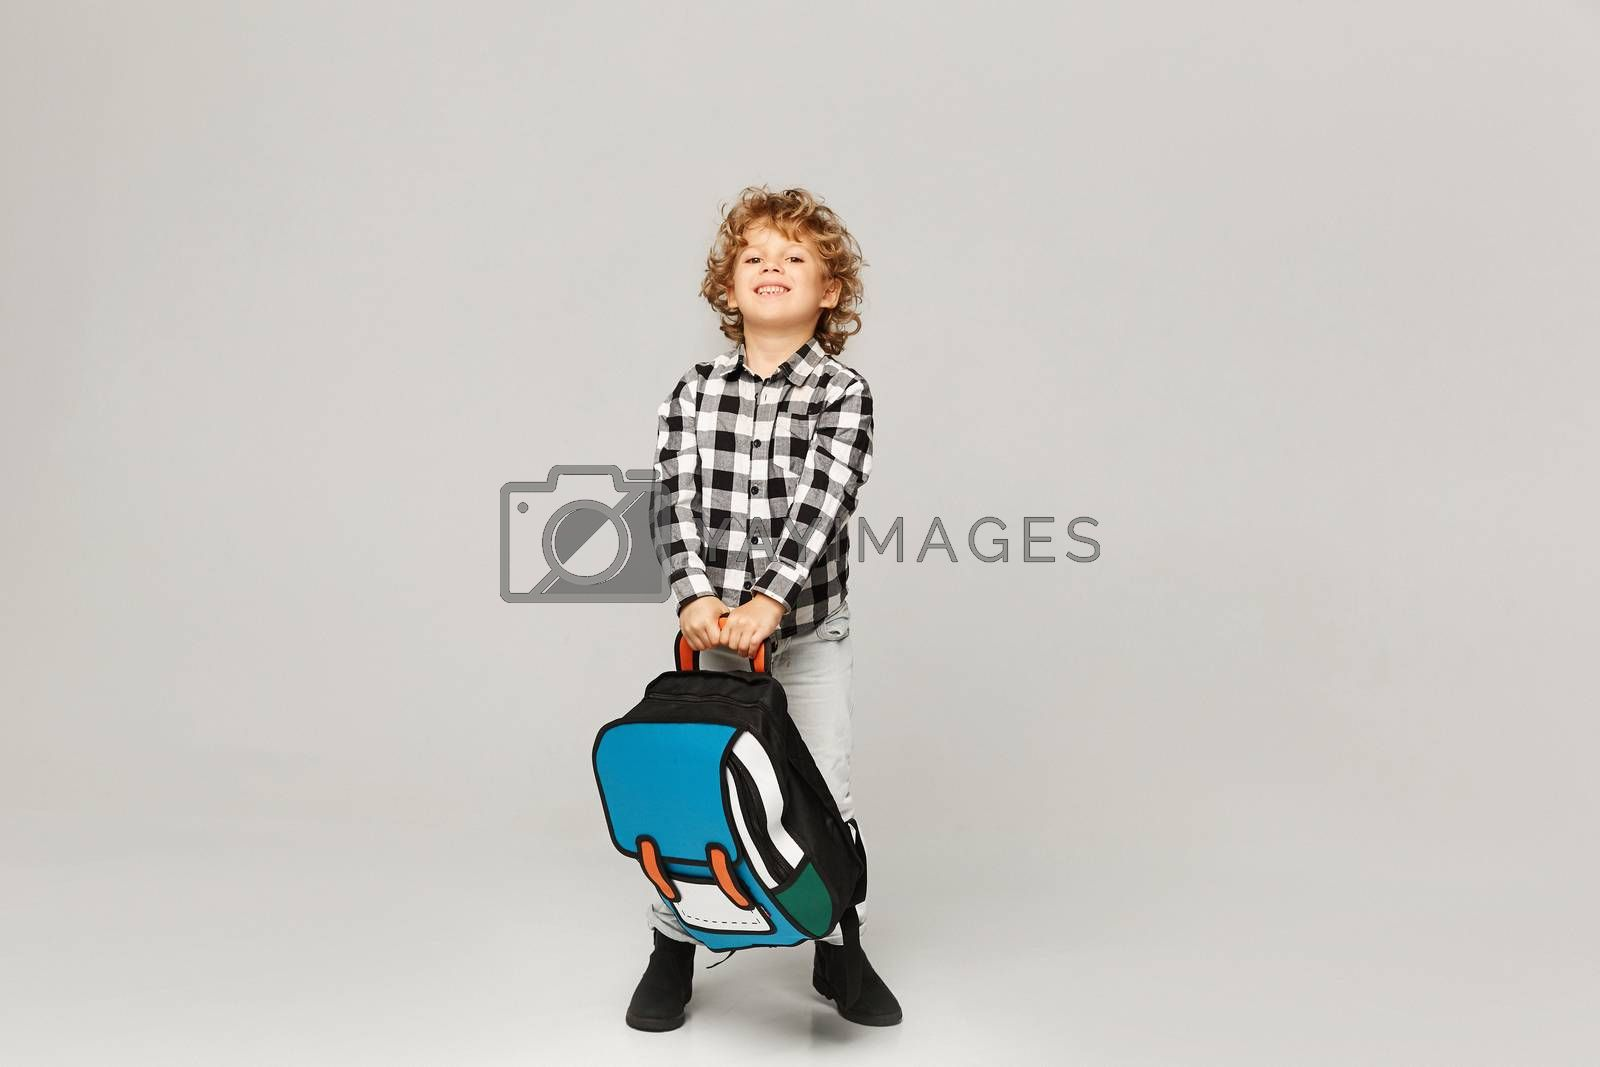 Back to school. A funny little boy from elementary school posing with a backpack over white background, isolated by Ina